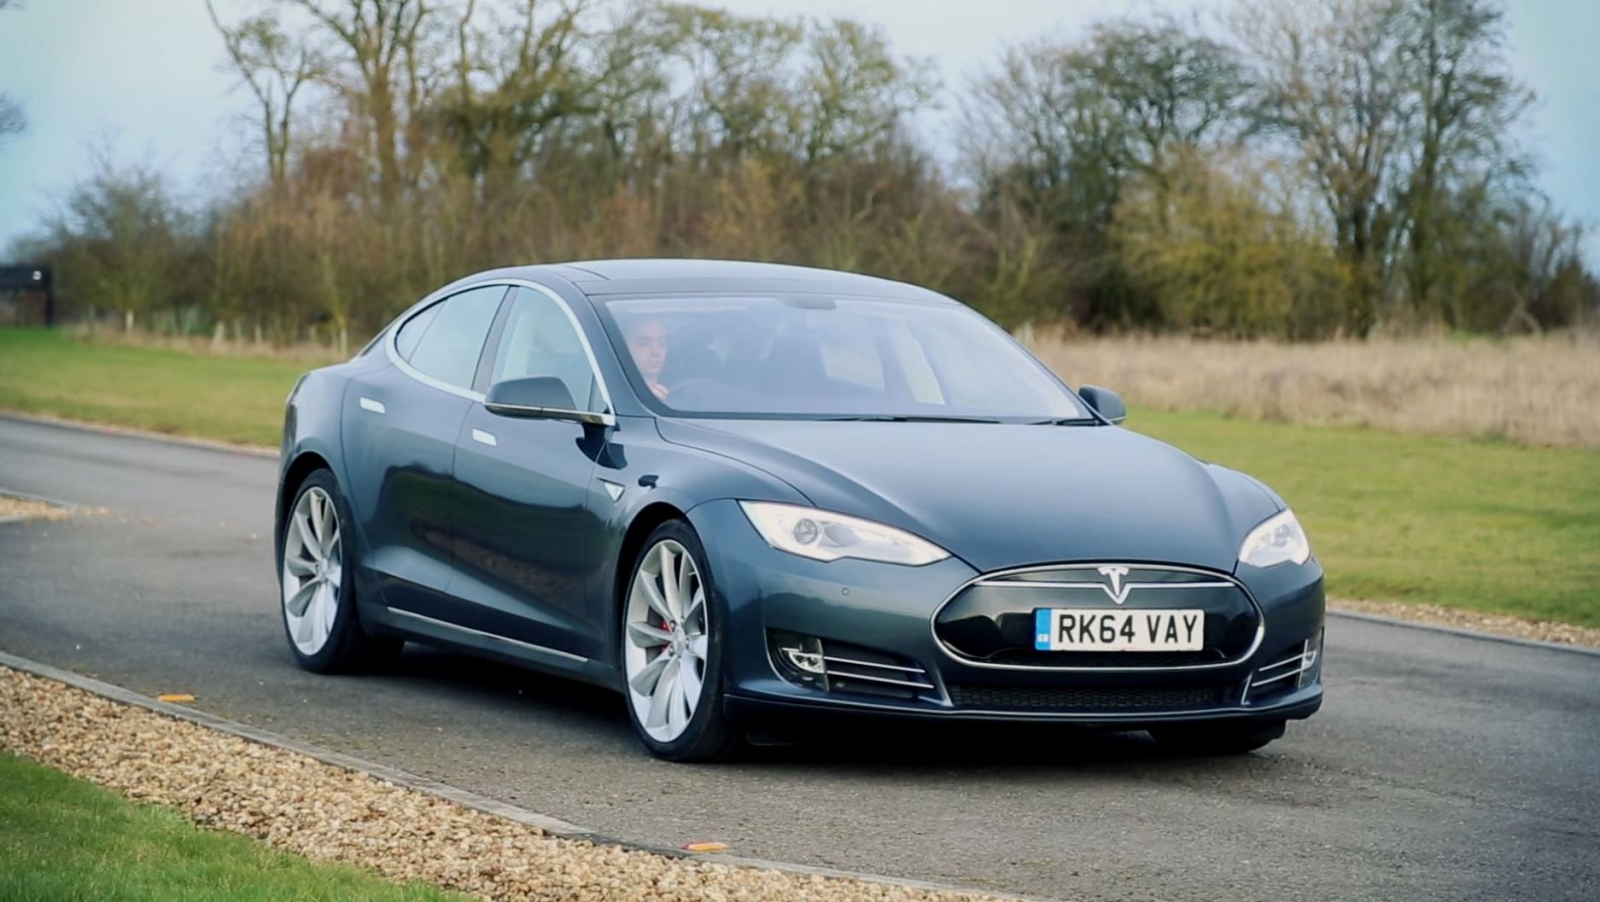 Tesla Model S P85+ review: The car of future is already here